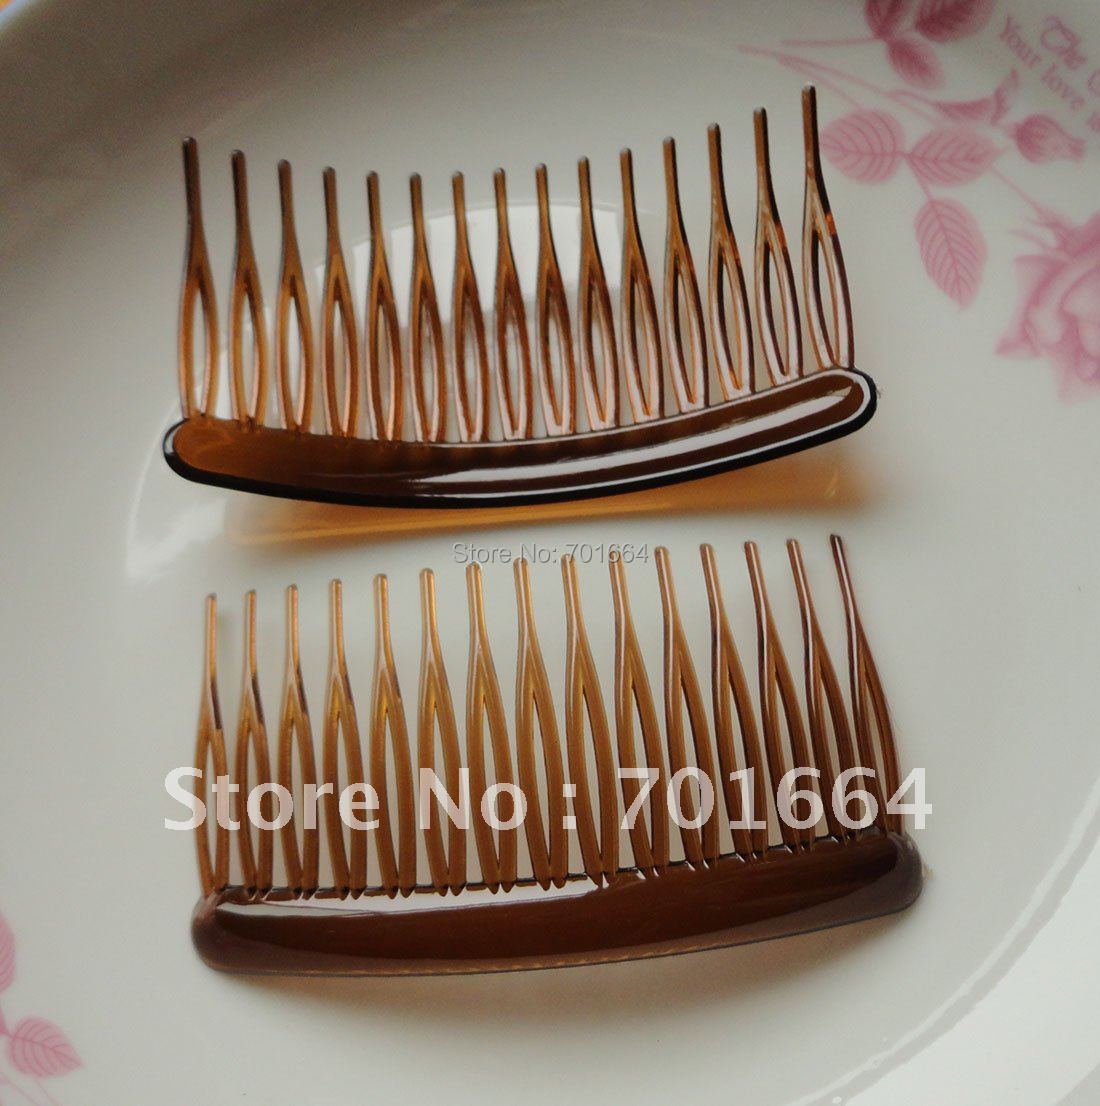 20PCS 15teeth medium size 4.5cm*8.0cm clear dark brown plain plastic side comb Handmade wedding brial hair jewelry accessories